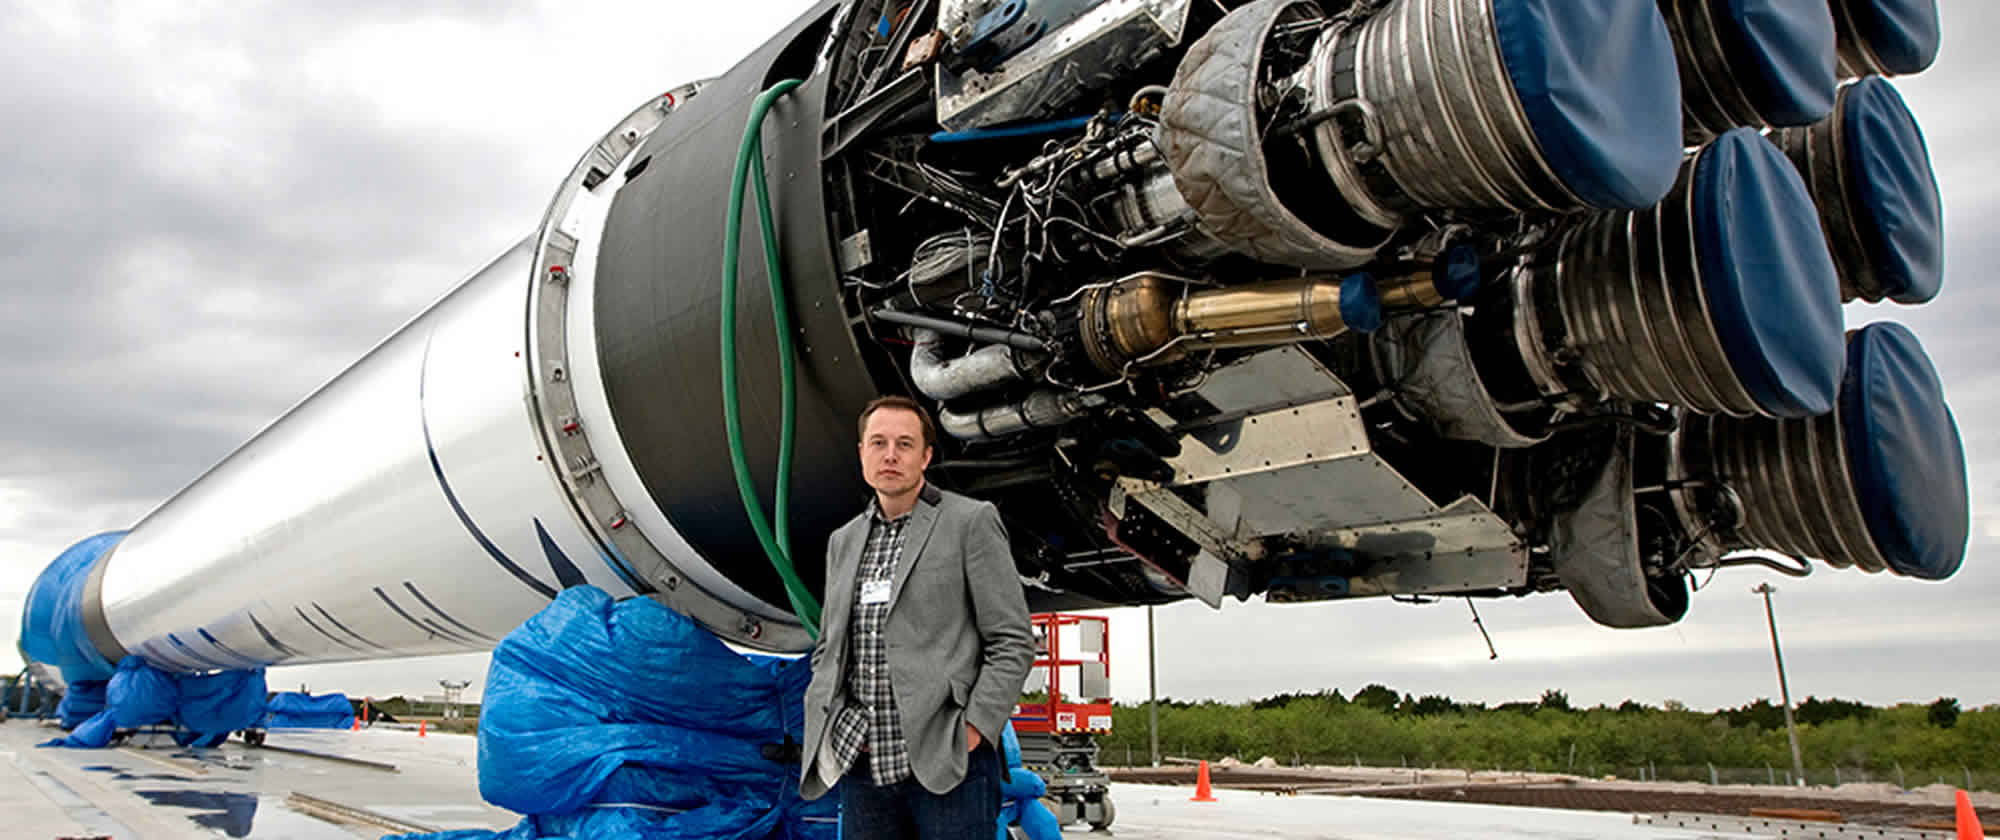 elon reeve musk born june 28 1971 is a south african born canadian american business magnate investor engineer and inventor